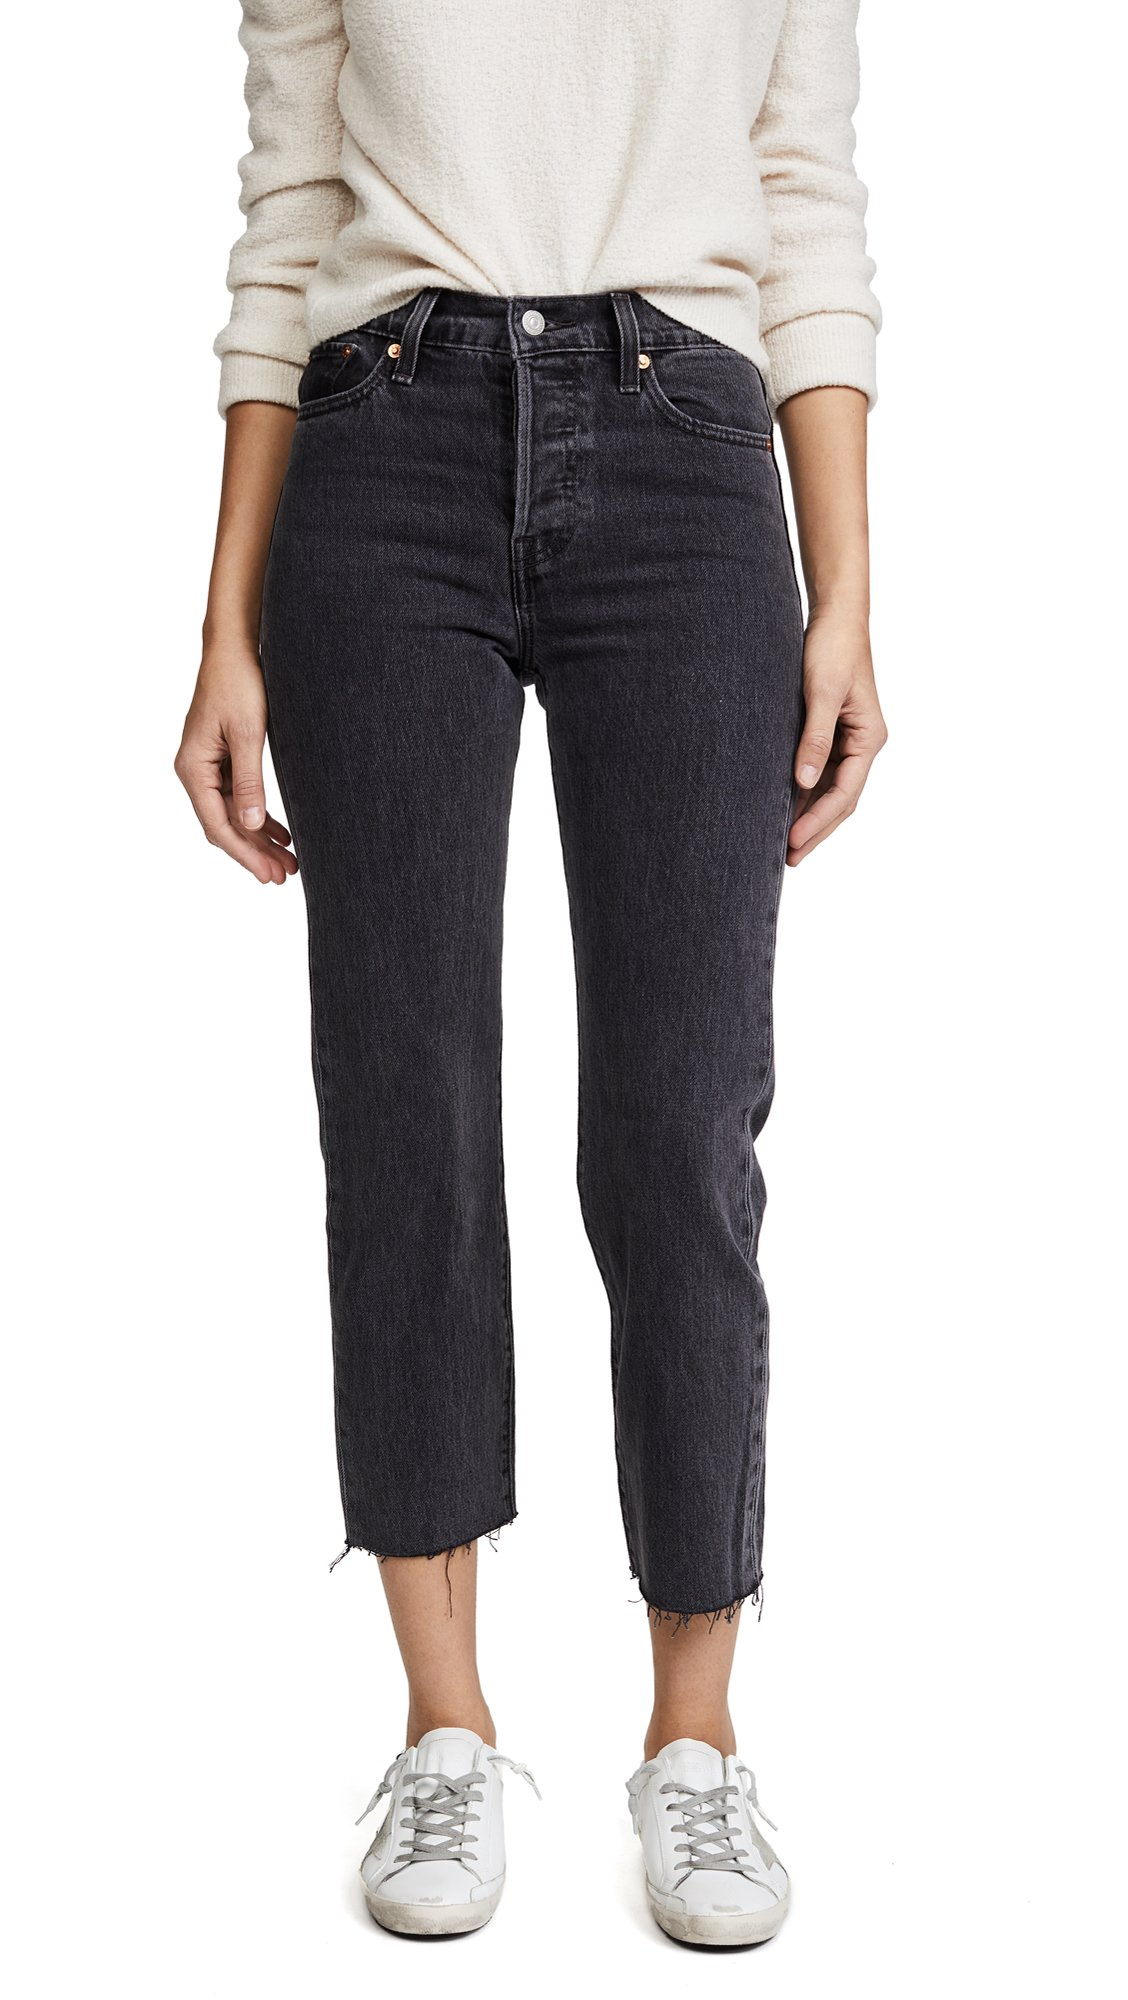 Levi's Women's Wedgie Straight Jeans, That Girl, 24